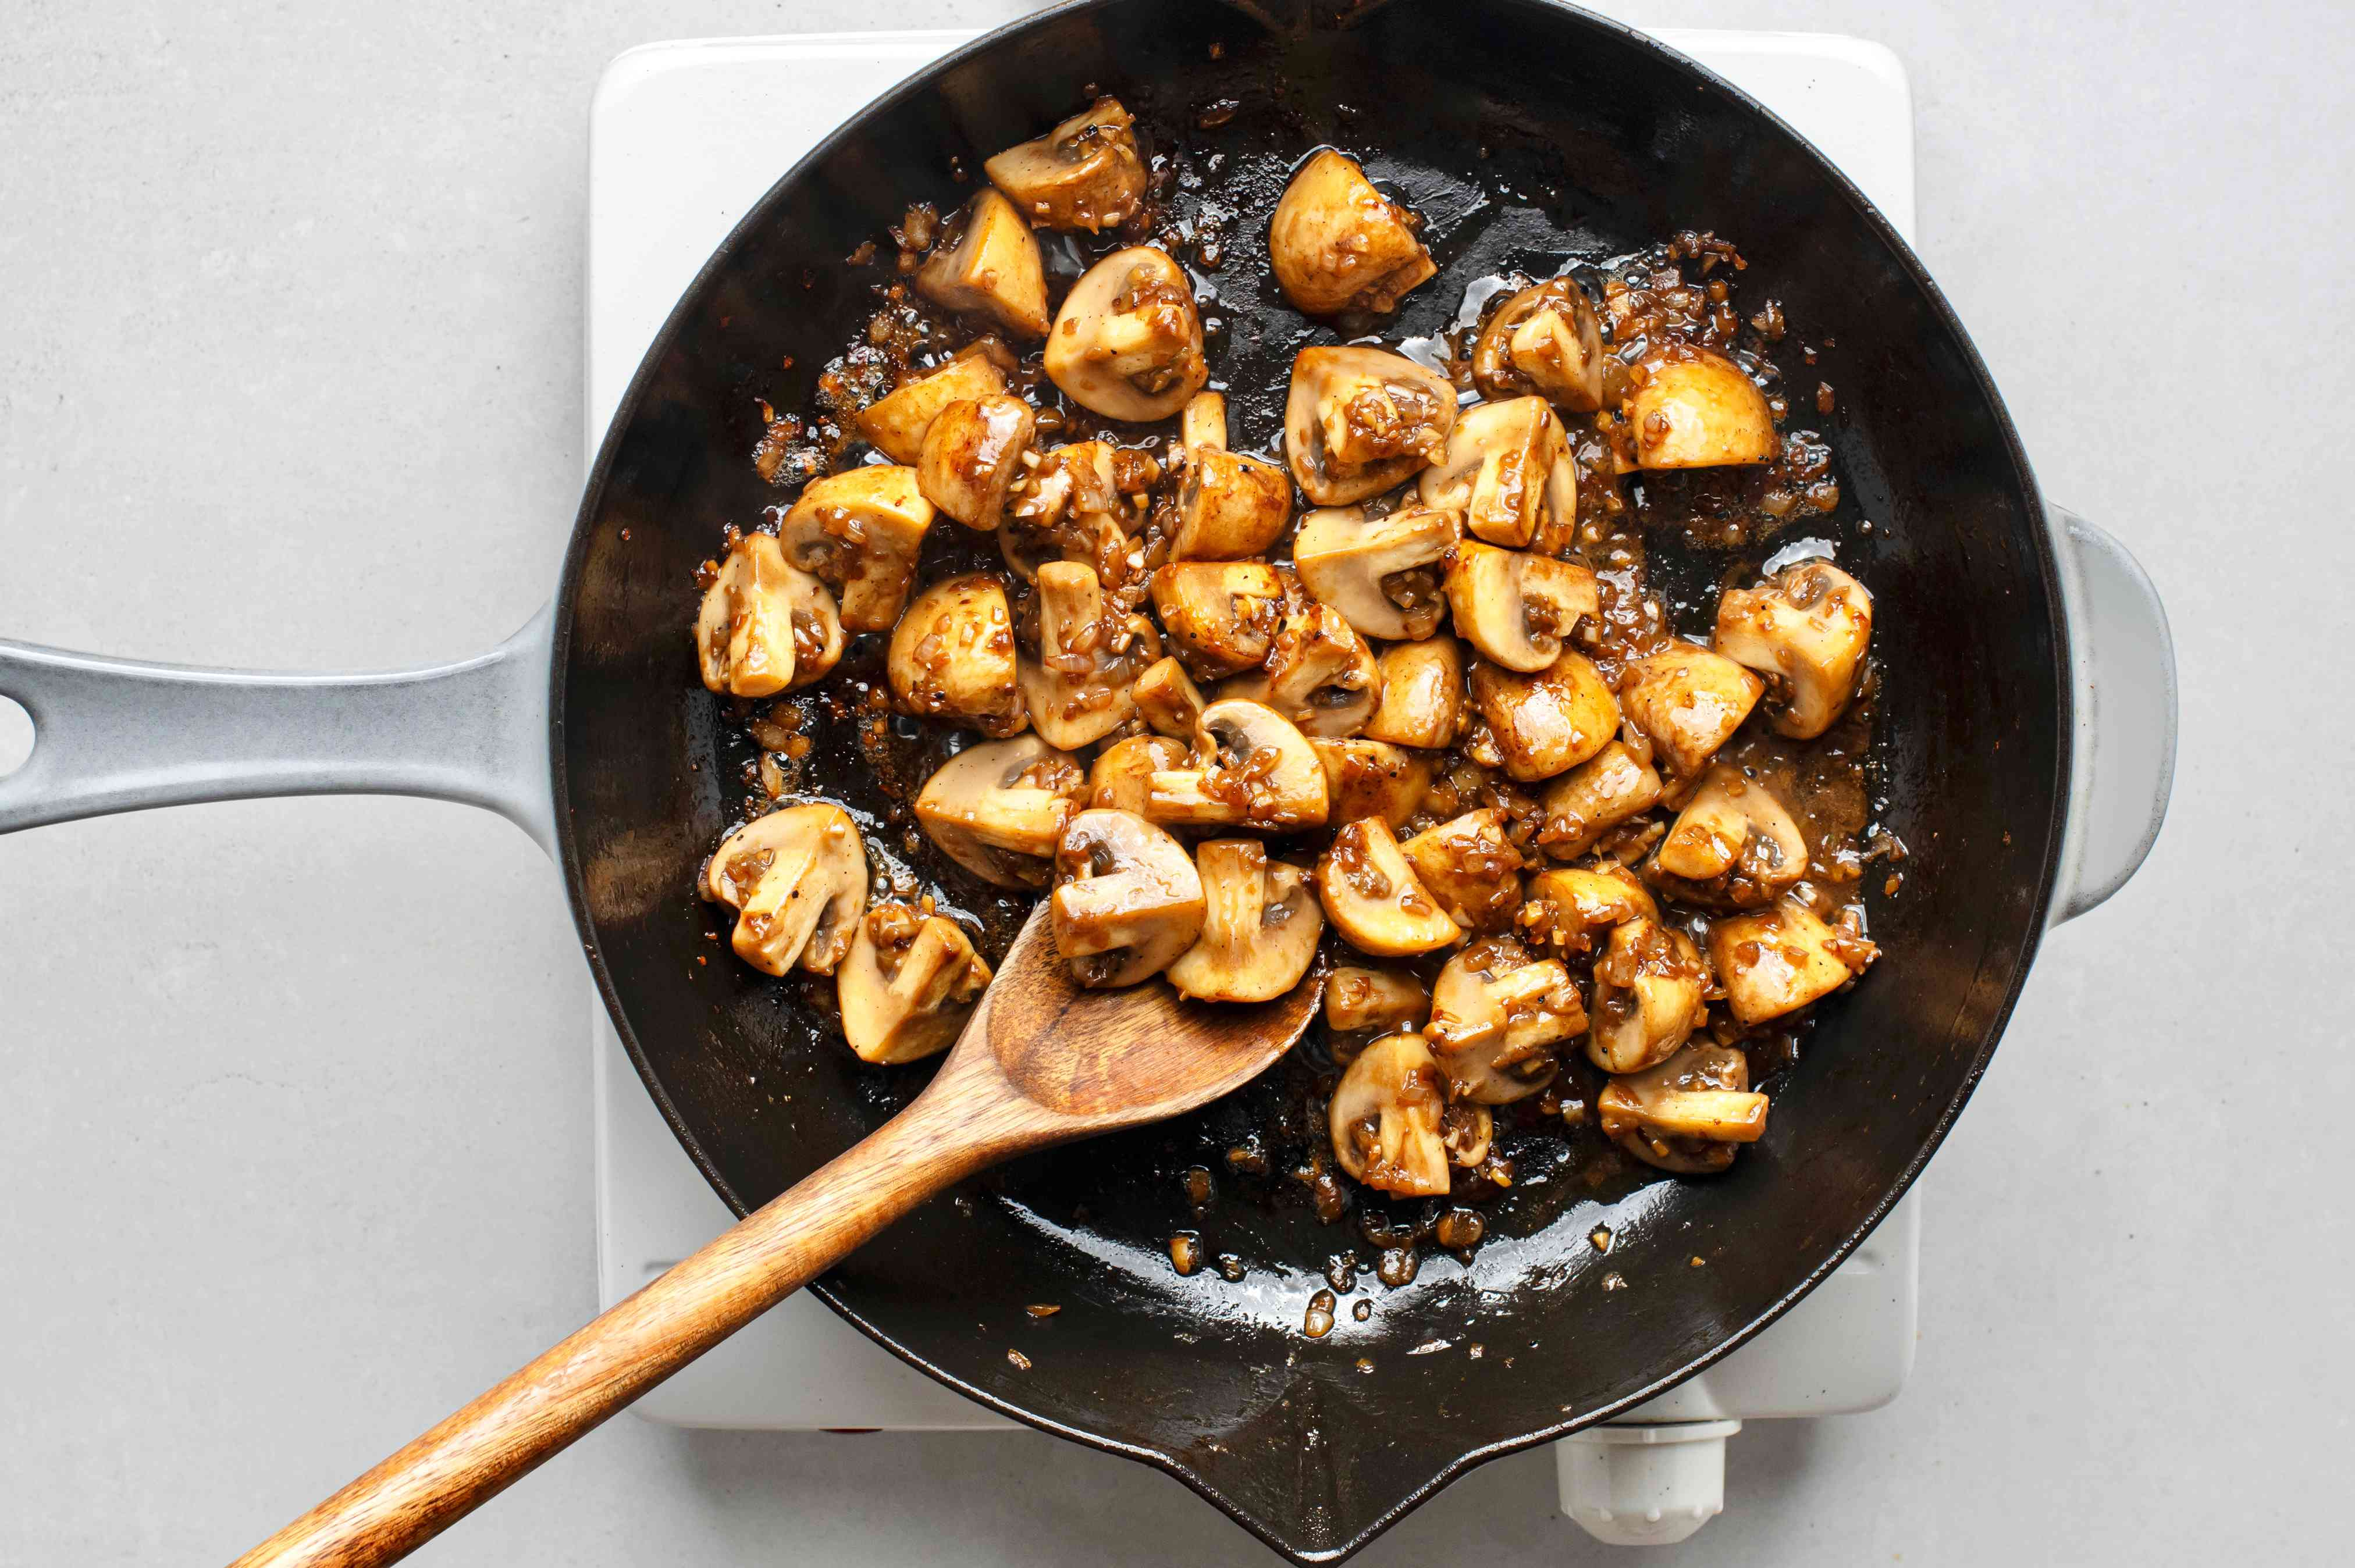 Saute until mushrooms have released their liquid, with the garlic mixture